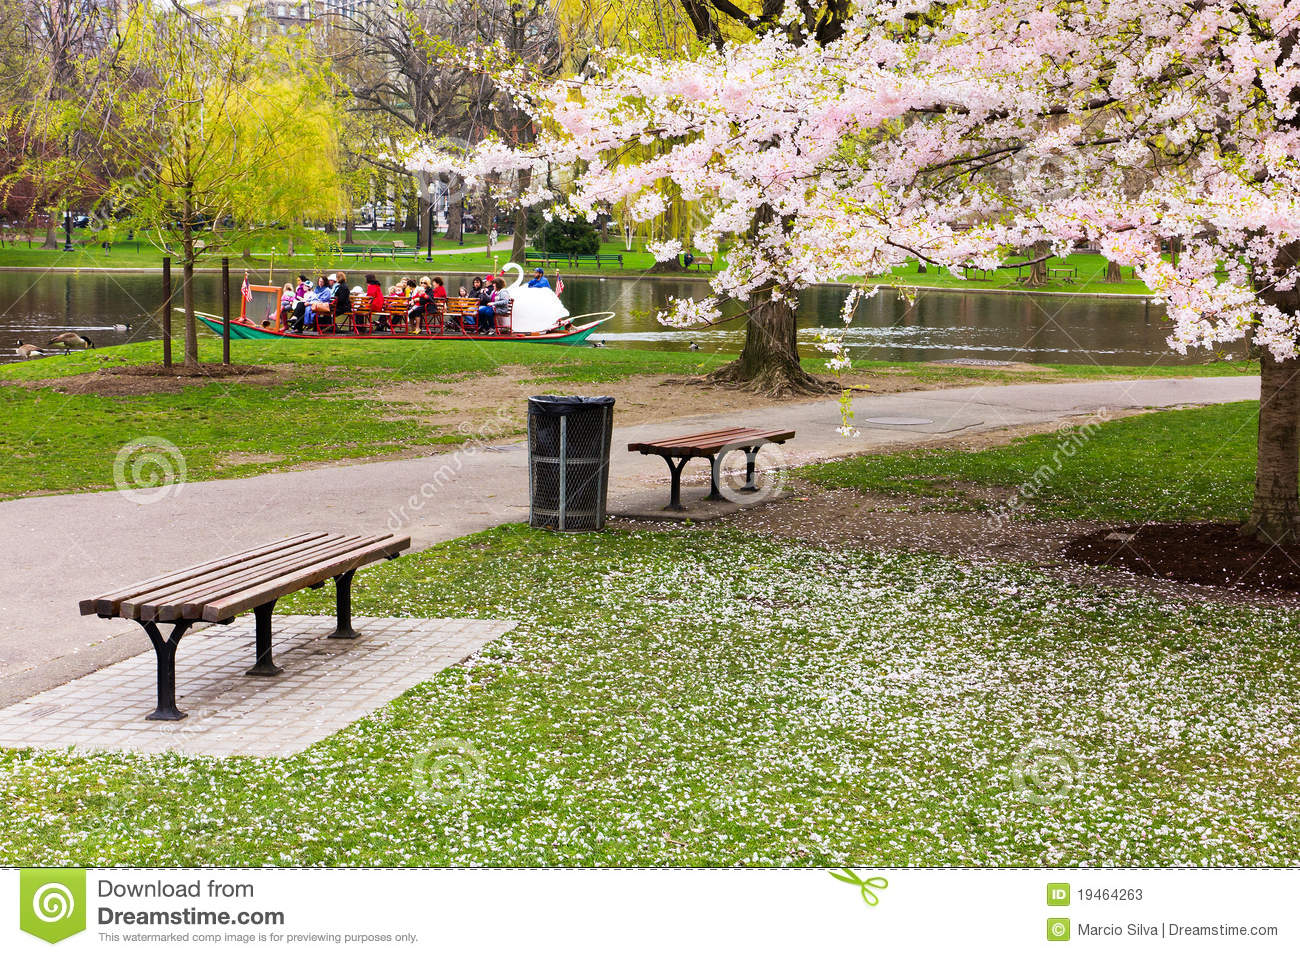 Jardin public de boston au printemps photo stock ditorial for Jardin public